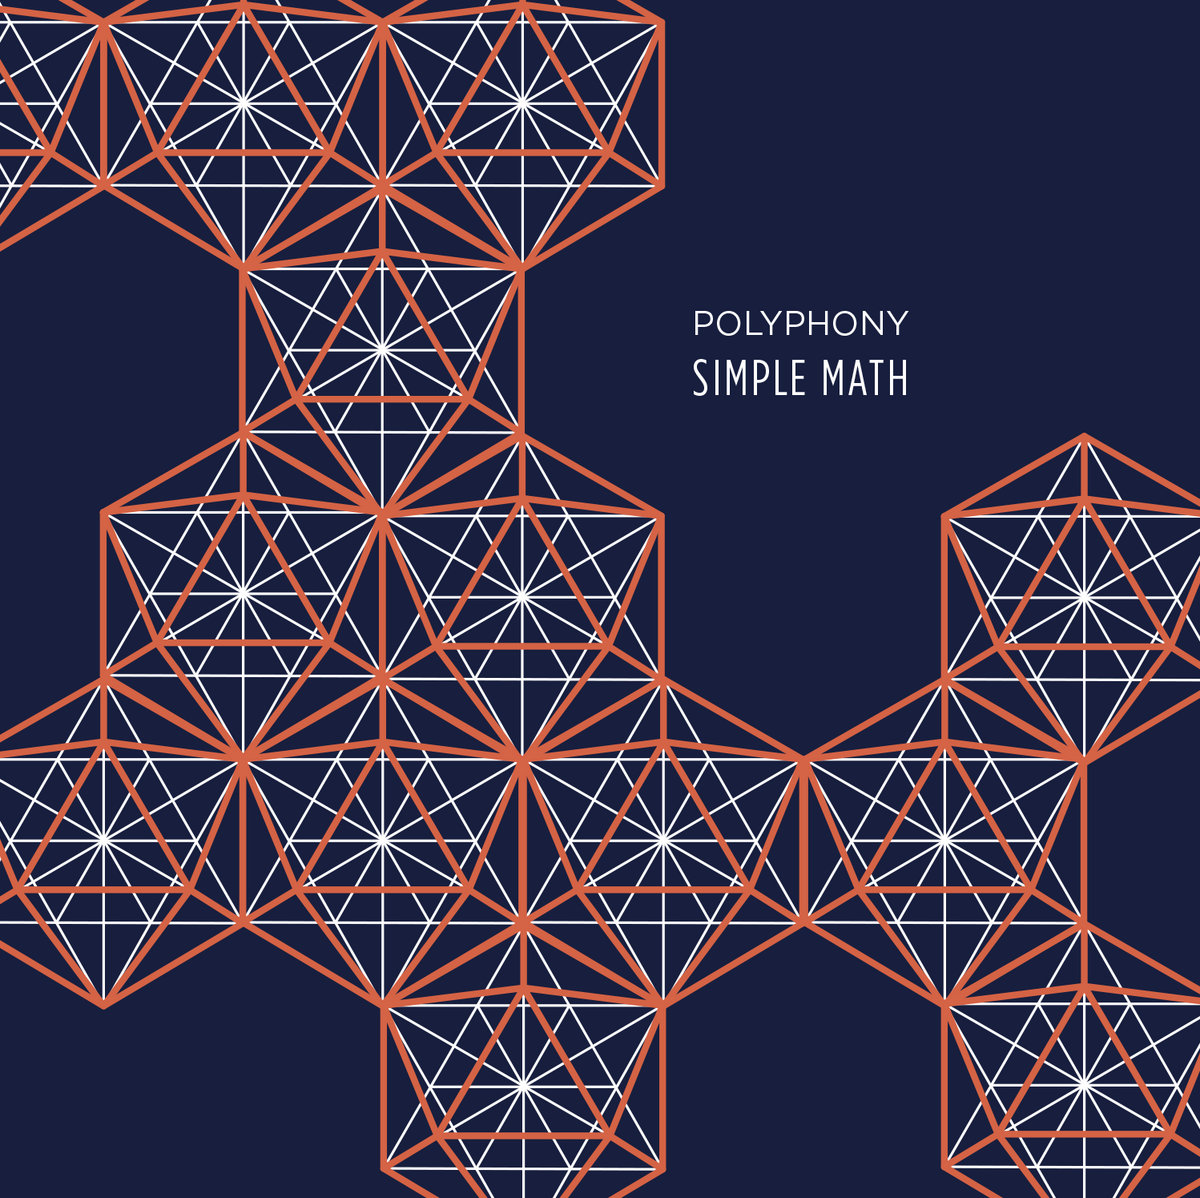 Simple Math | Polyphony